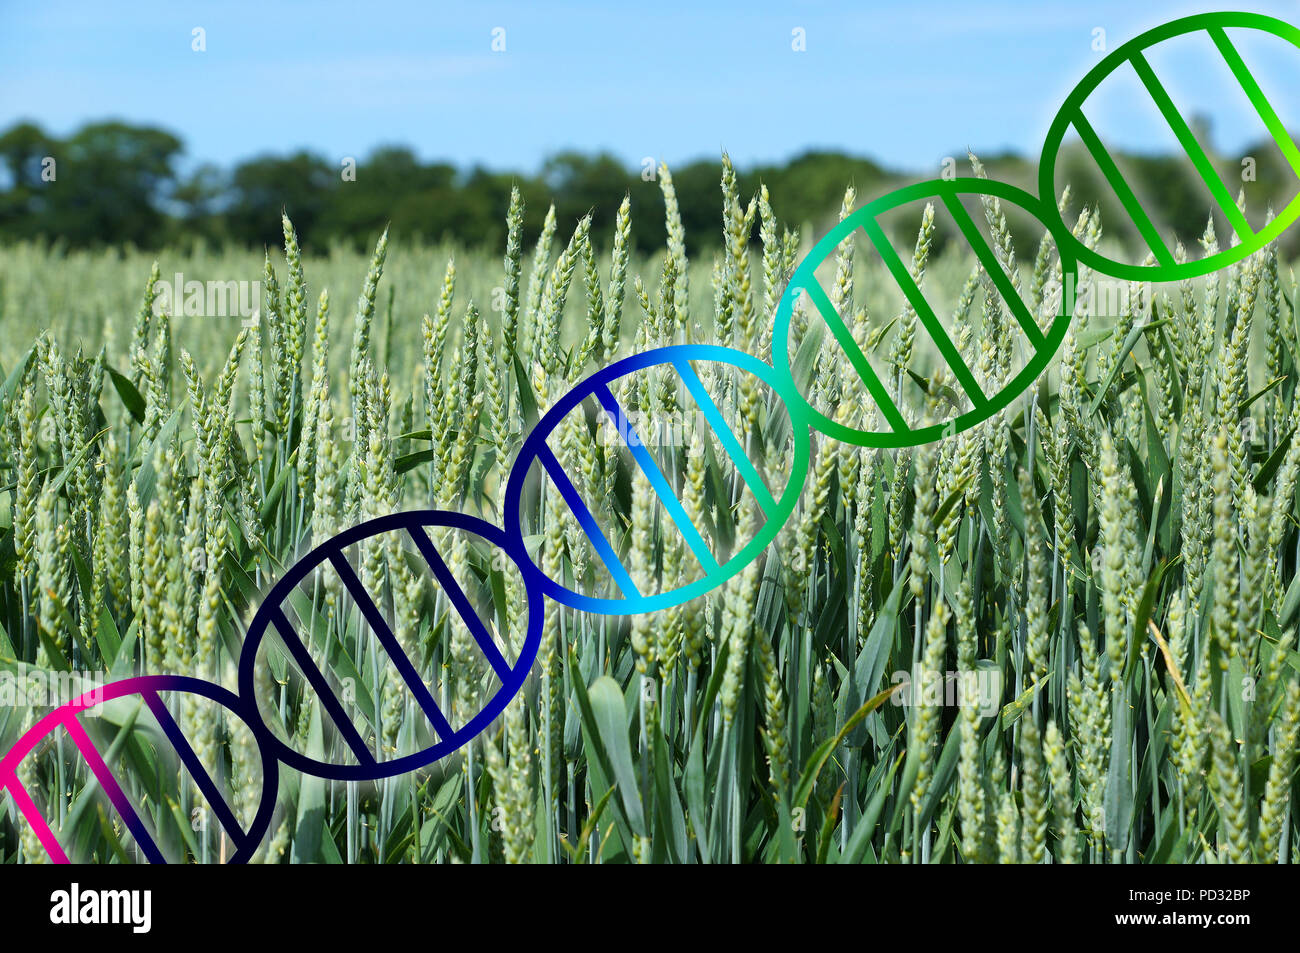 genome editing or genetic engineering concept, dna double helix over wheat crop field - Stock Image